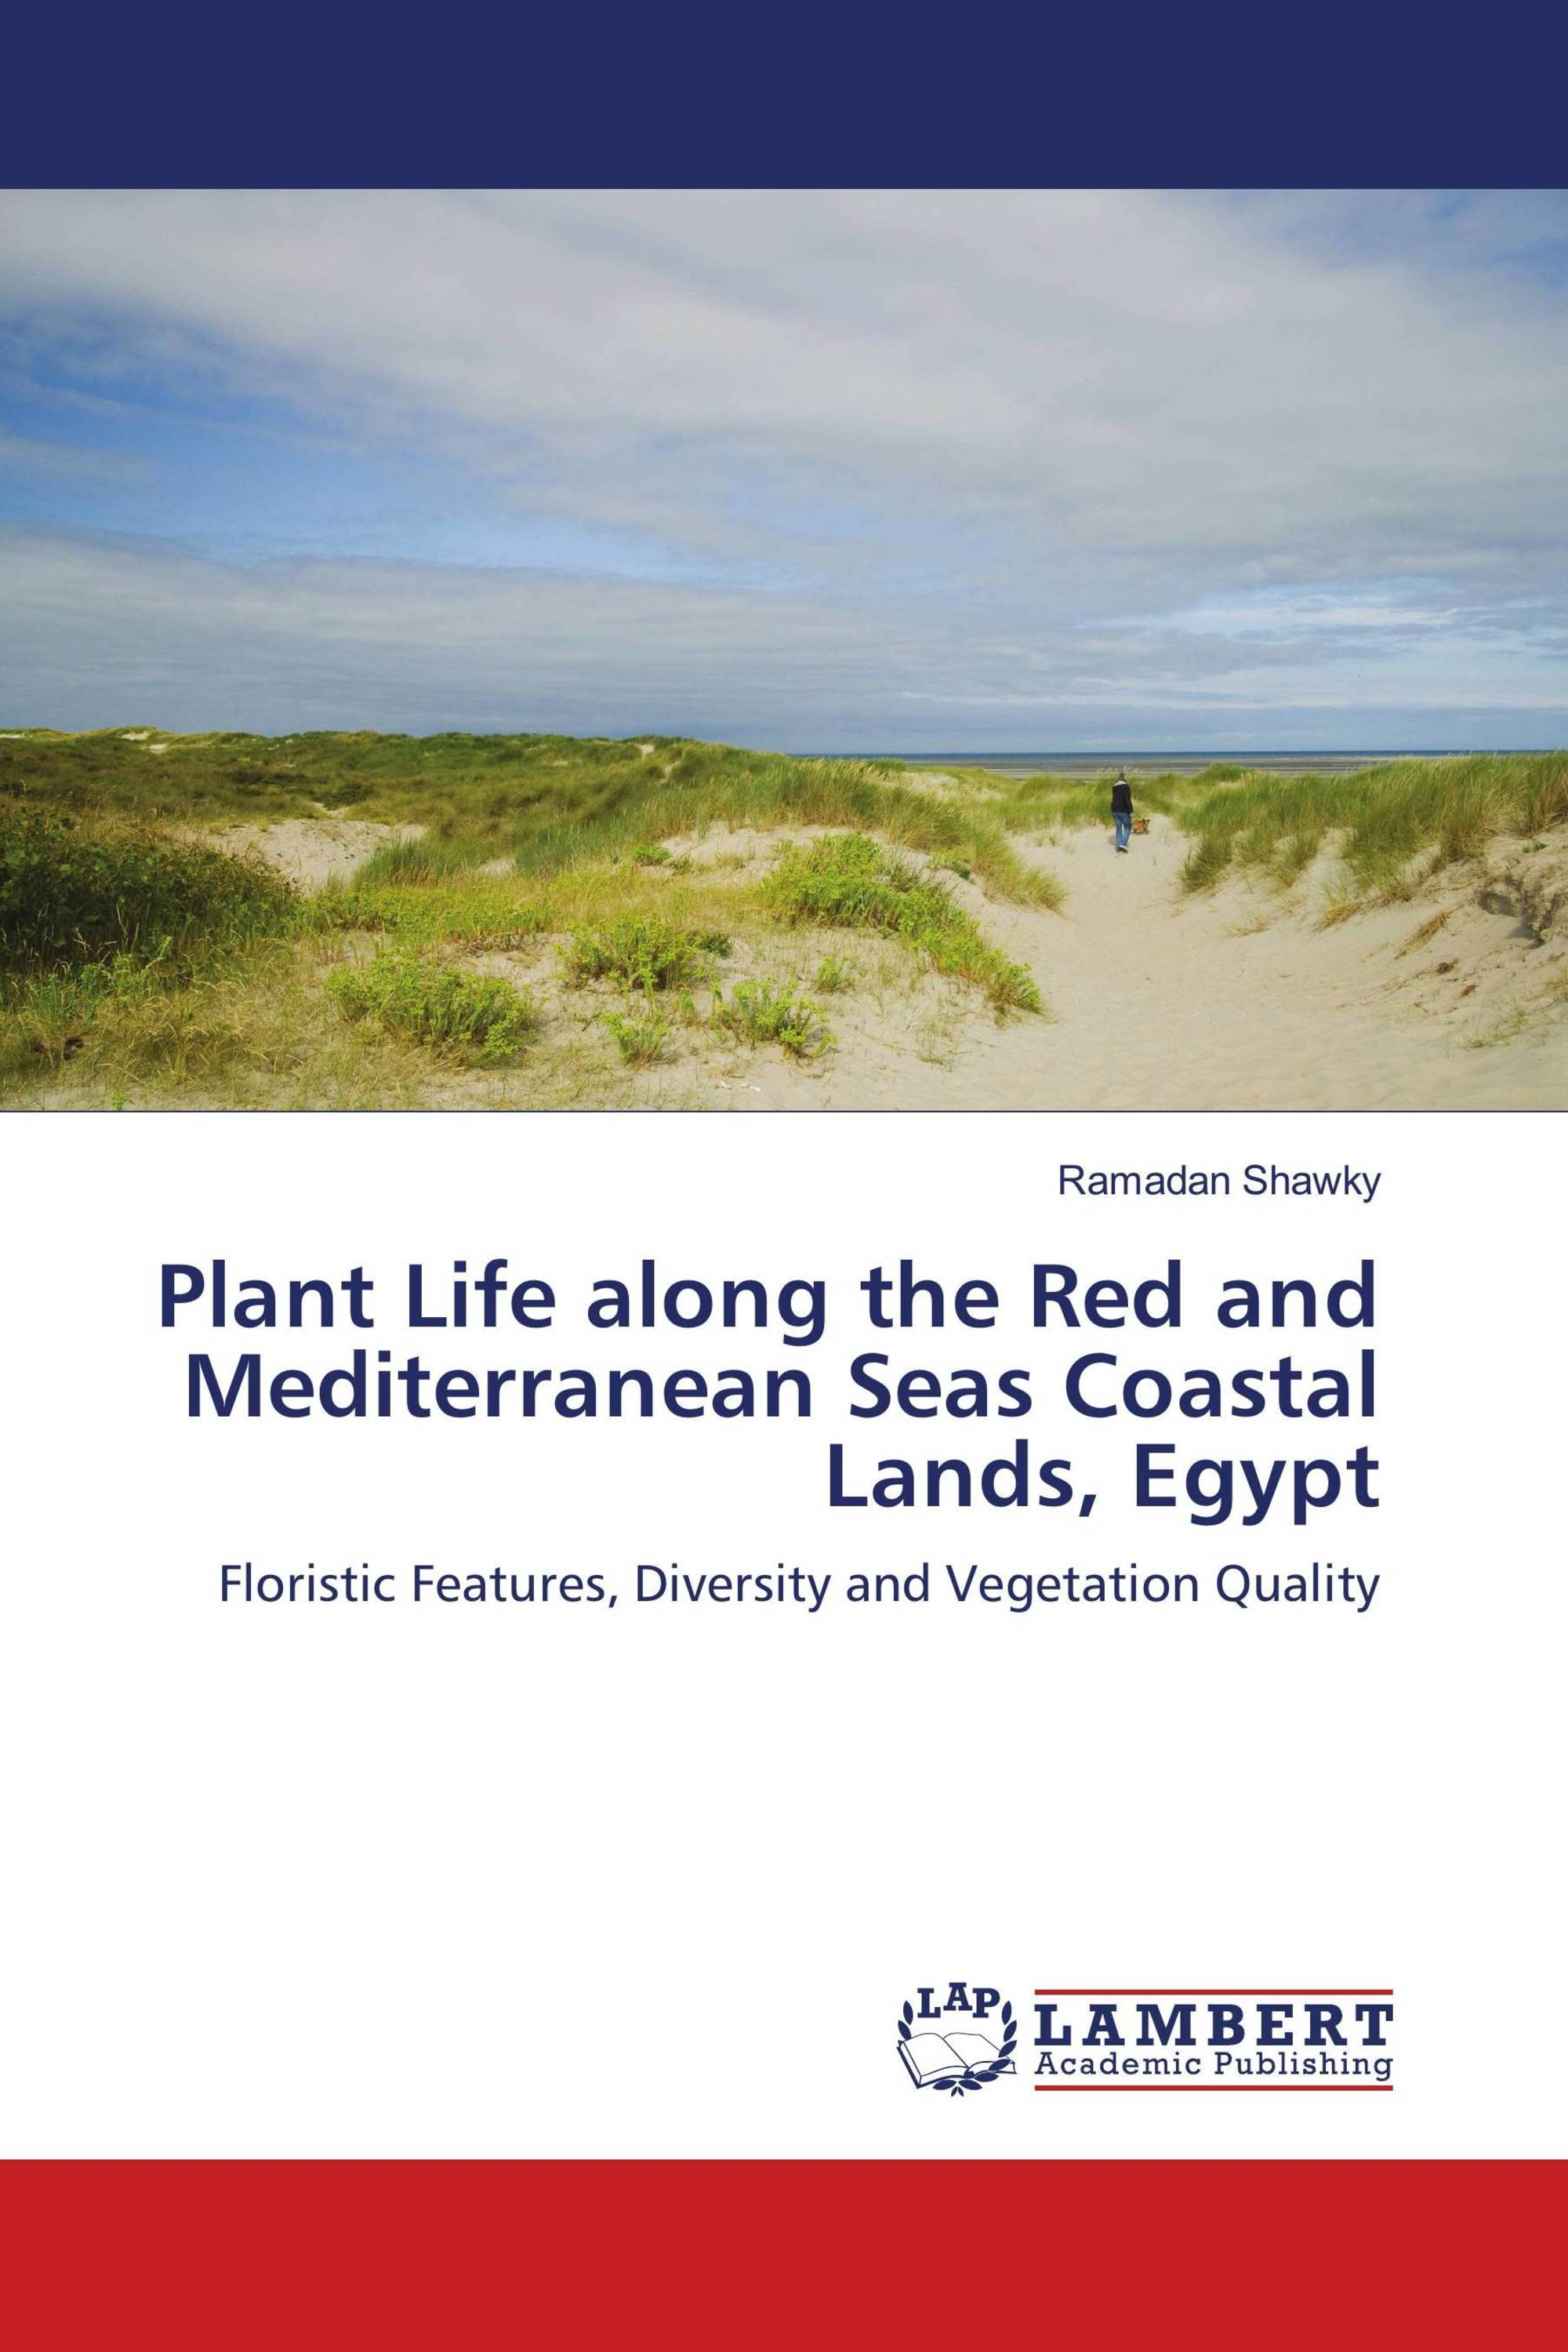 Plant Life along the Red and Mediterranean Seas Coastal Lands, Egypt